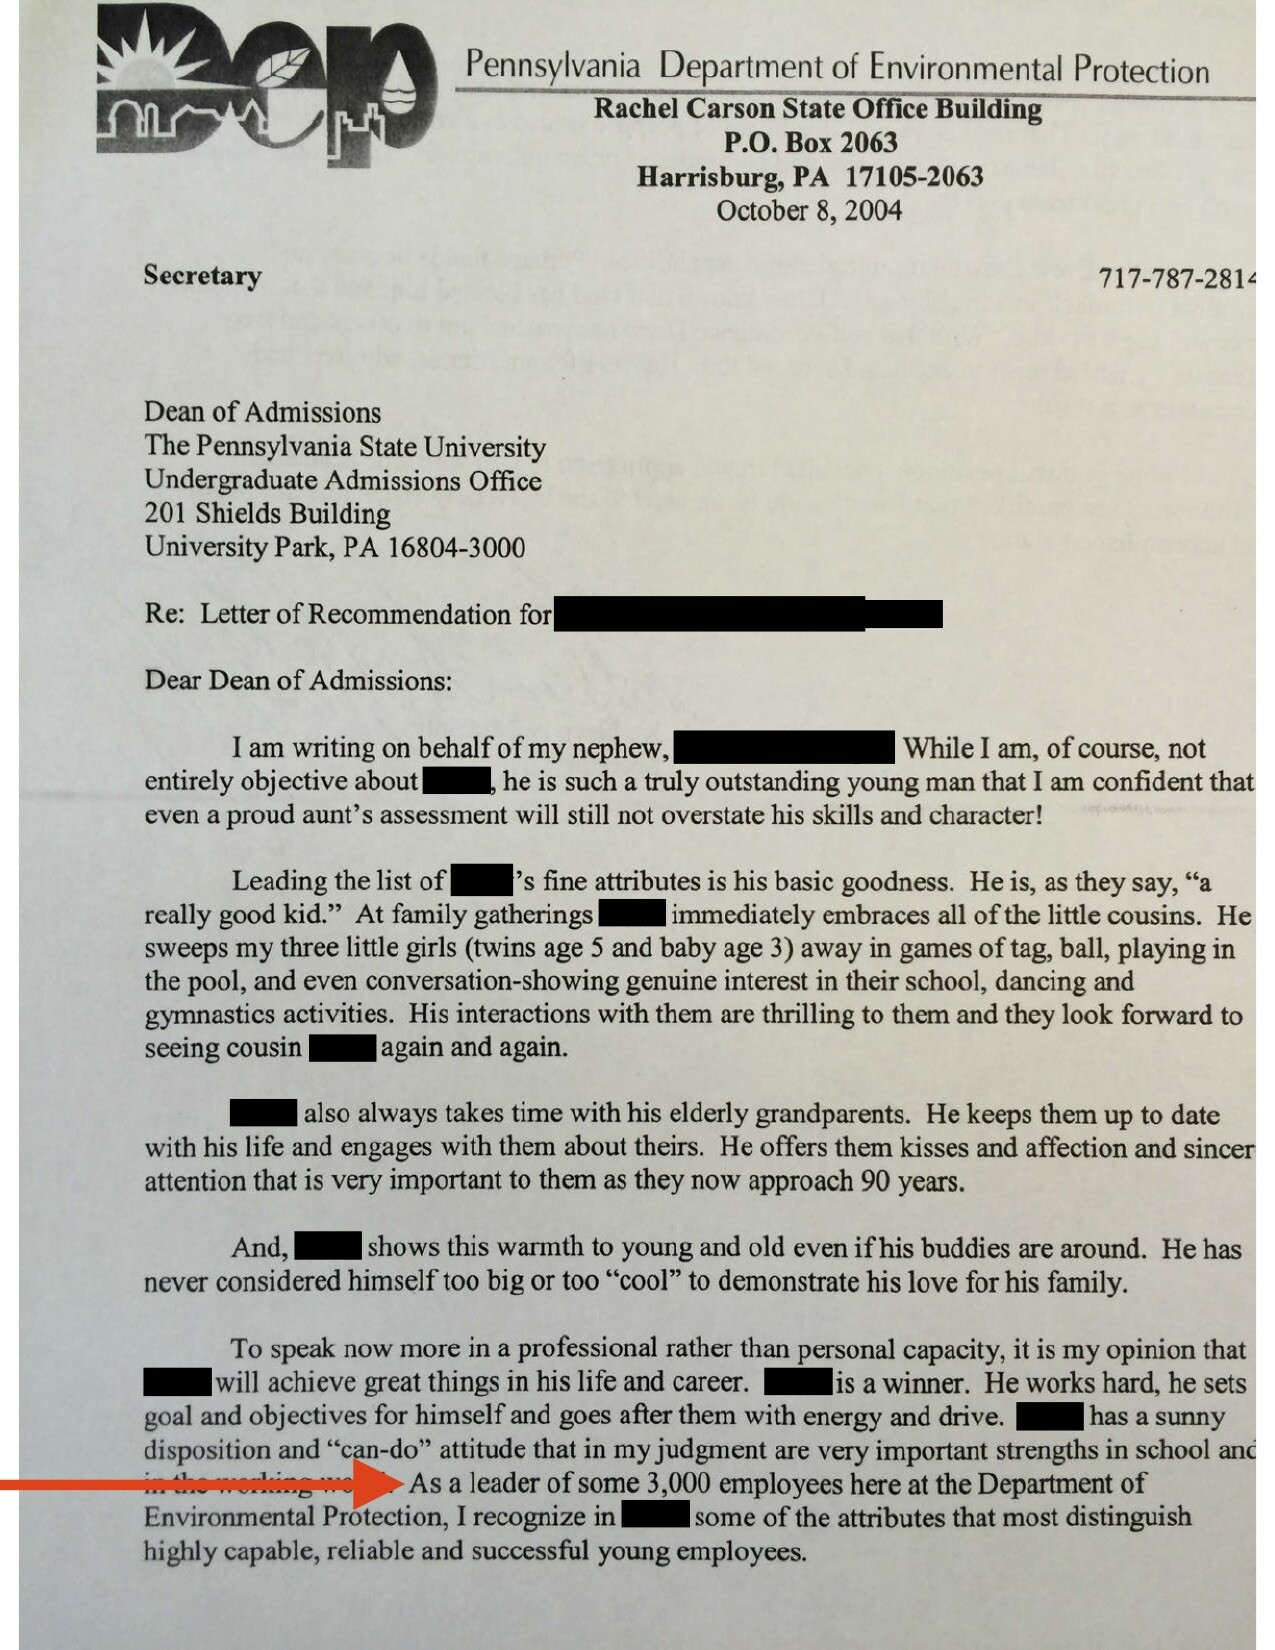 Pa  cabinet official McGinty's letter to Penn State